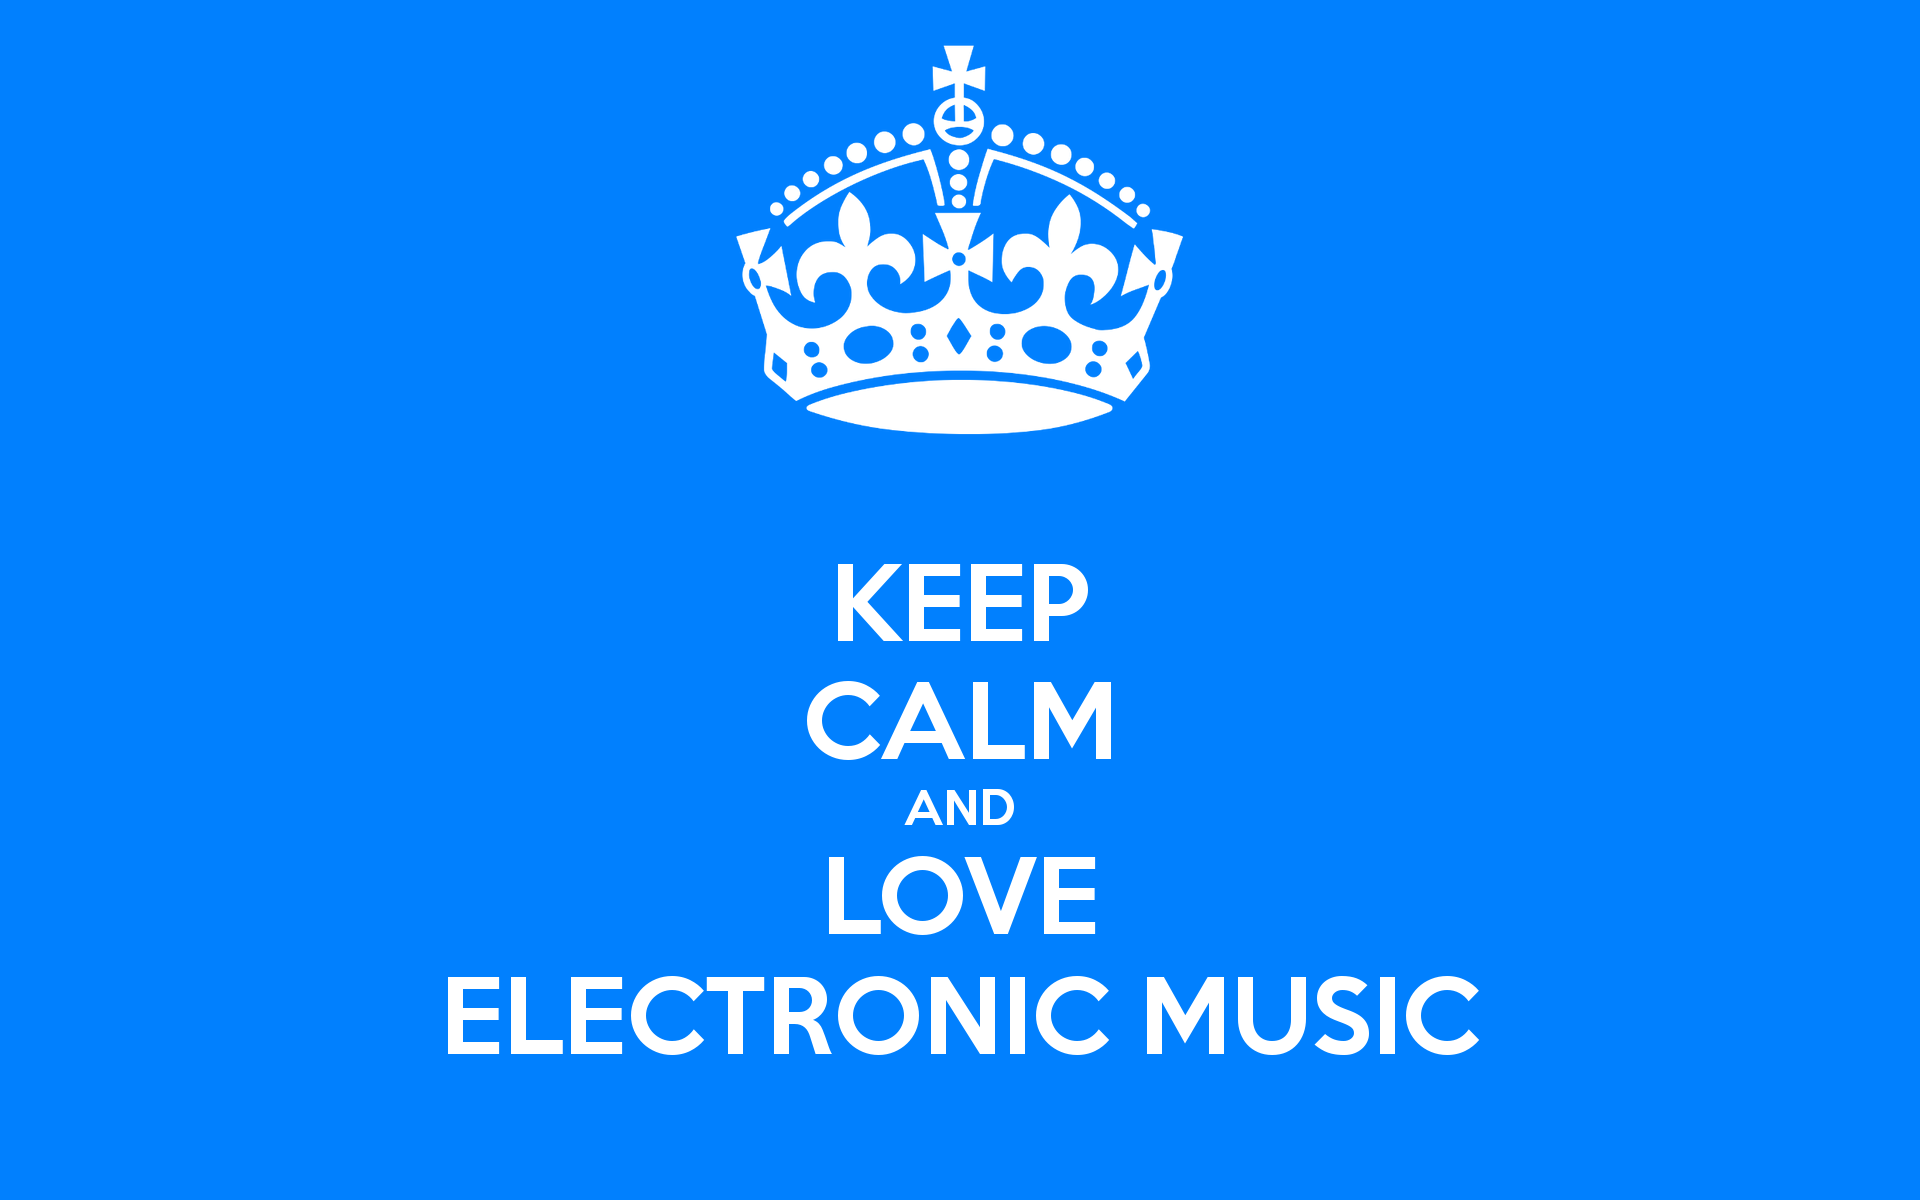 KEEP CALM AND LOVE ELECTRONIC MUSIC Poster